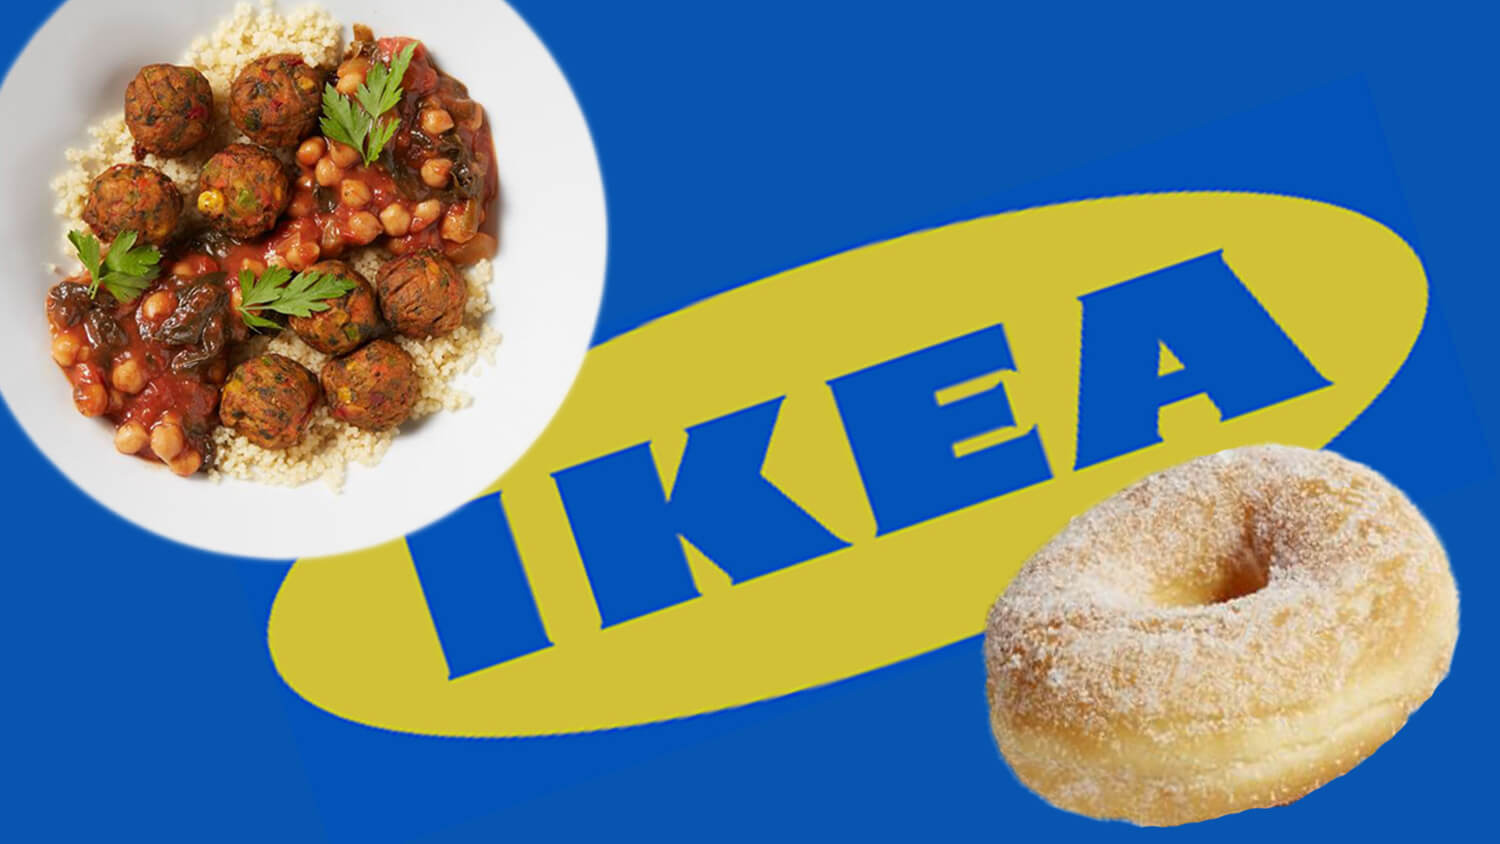 IKEA Partners With Uber Eats to Deliver Vegan 'Meatballs' and Doughnuts to Londoners